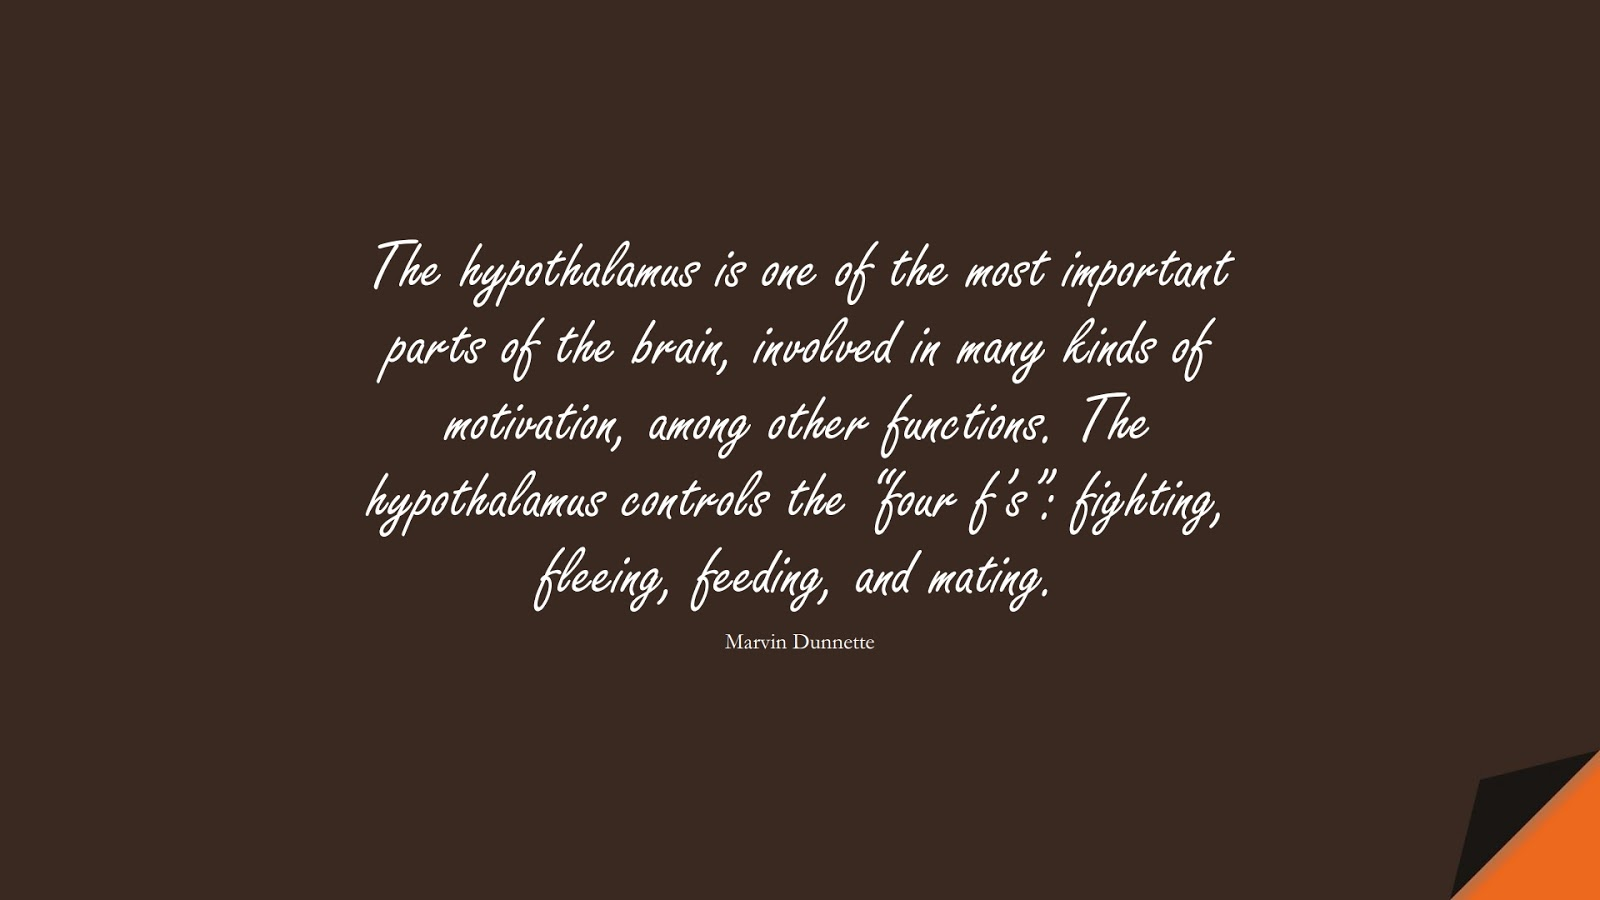 """The hypothalamus is one of the most important parts of the brain, involved in many kinds of motivation, among other functions. The hypothalamus controls the """"four f's"""": fighting, fleeing, feeding, and mating. (Marvin Dunnette);  #IntimacyQuotes"""